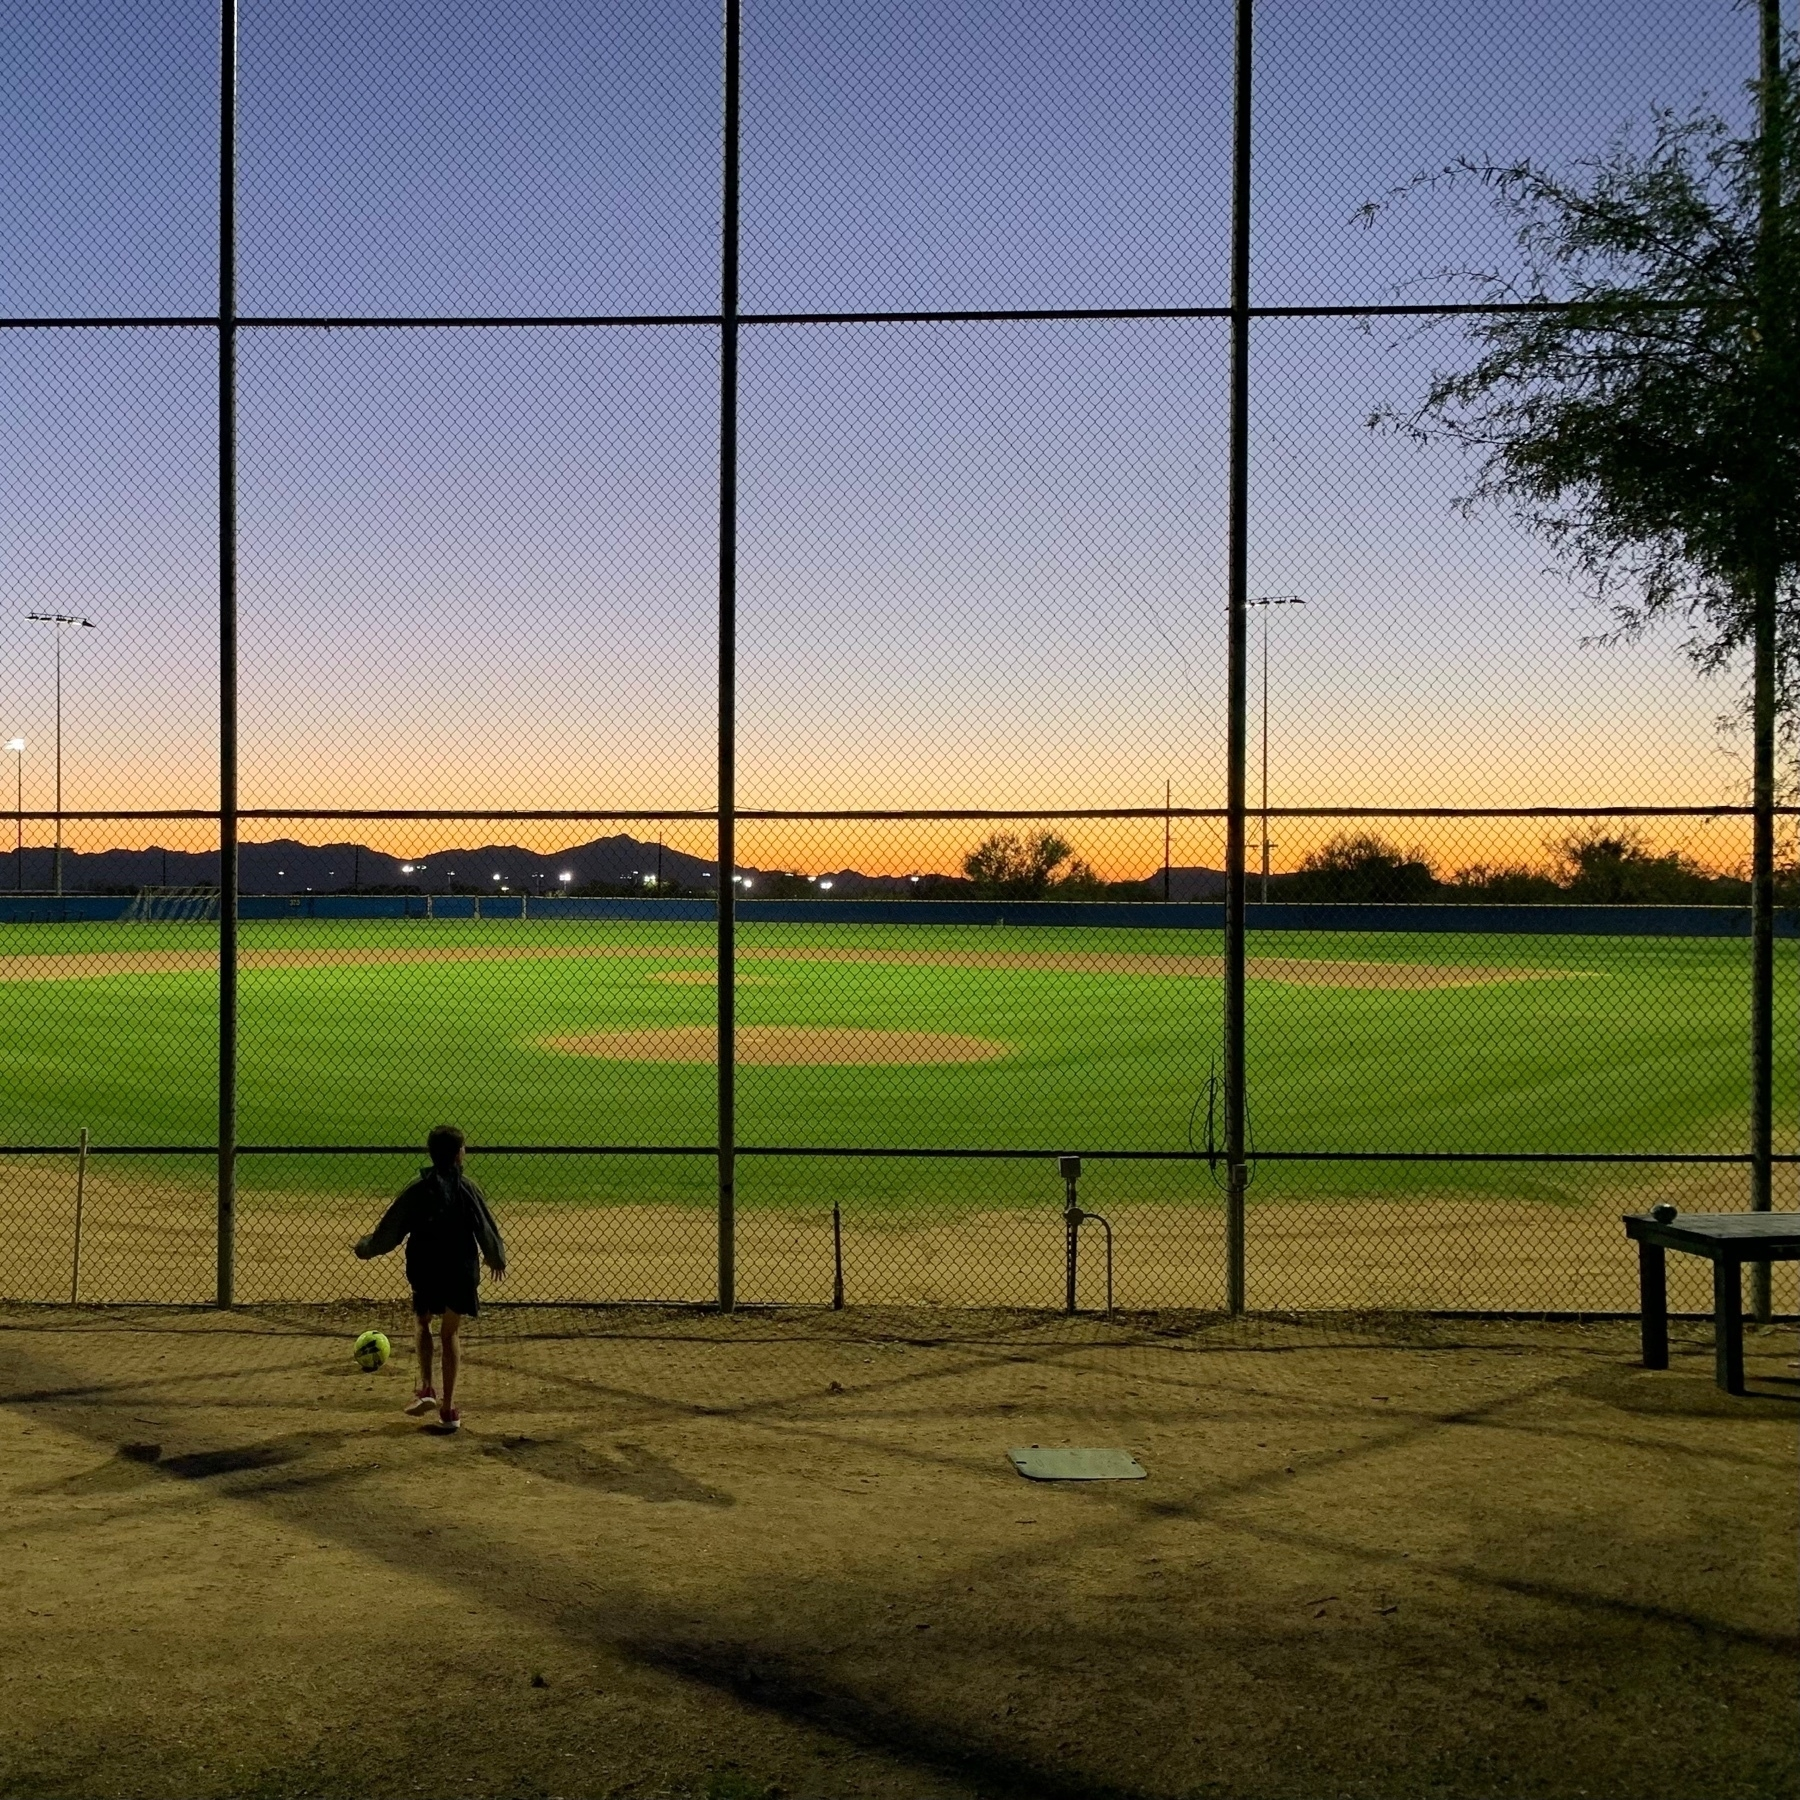 child with ball outside a baseball field at sunset